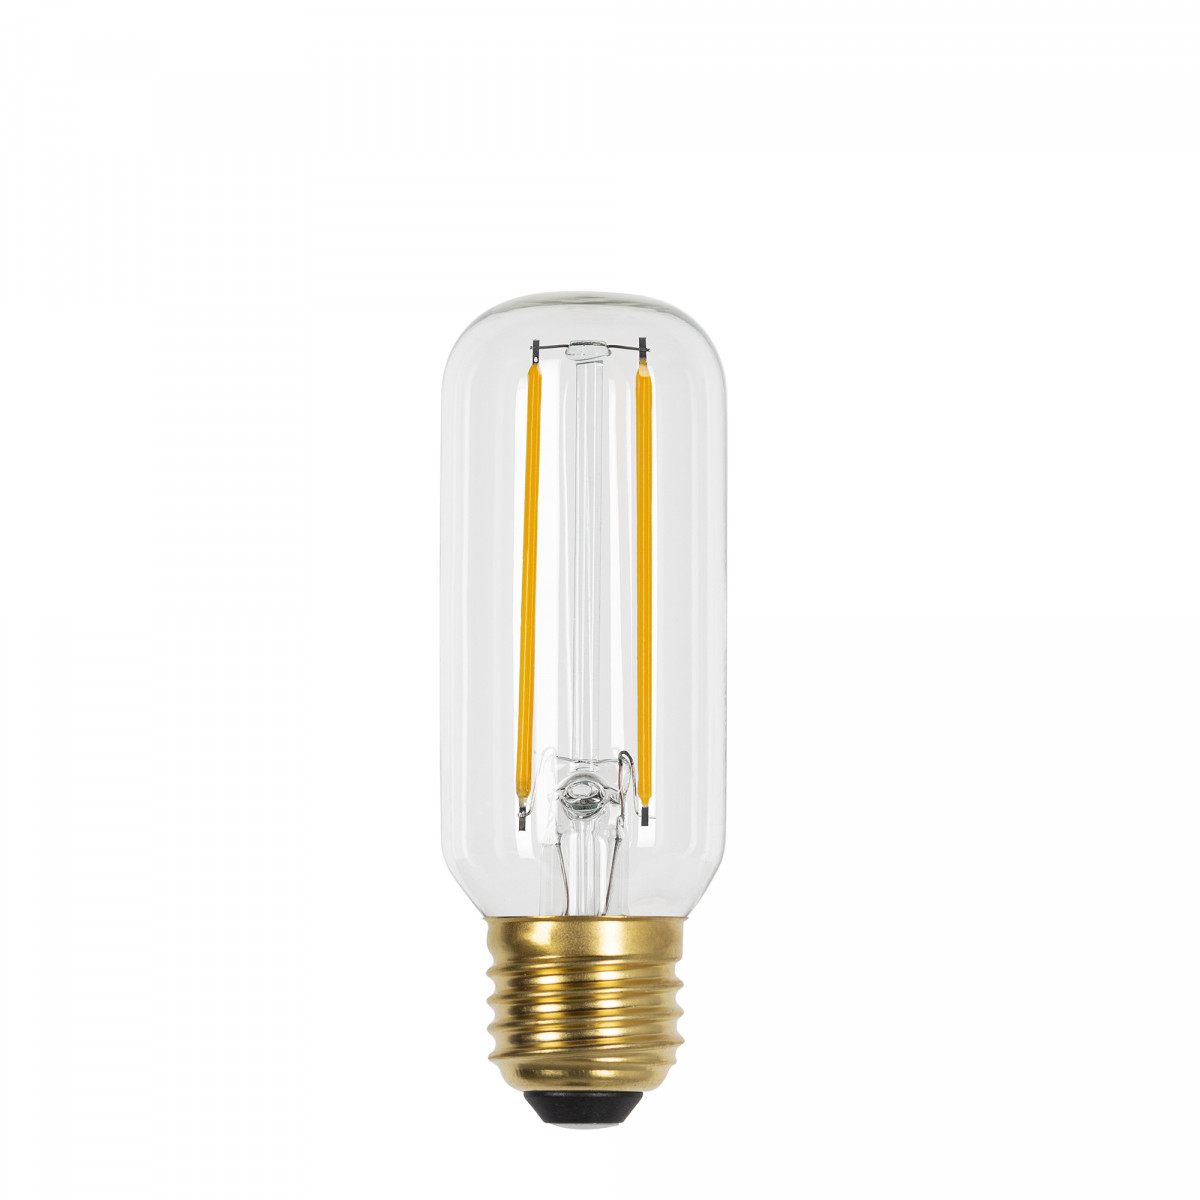 Tube buis LED lamp